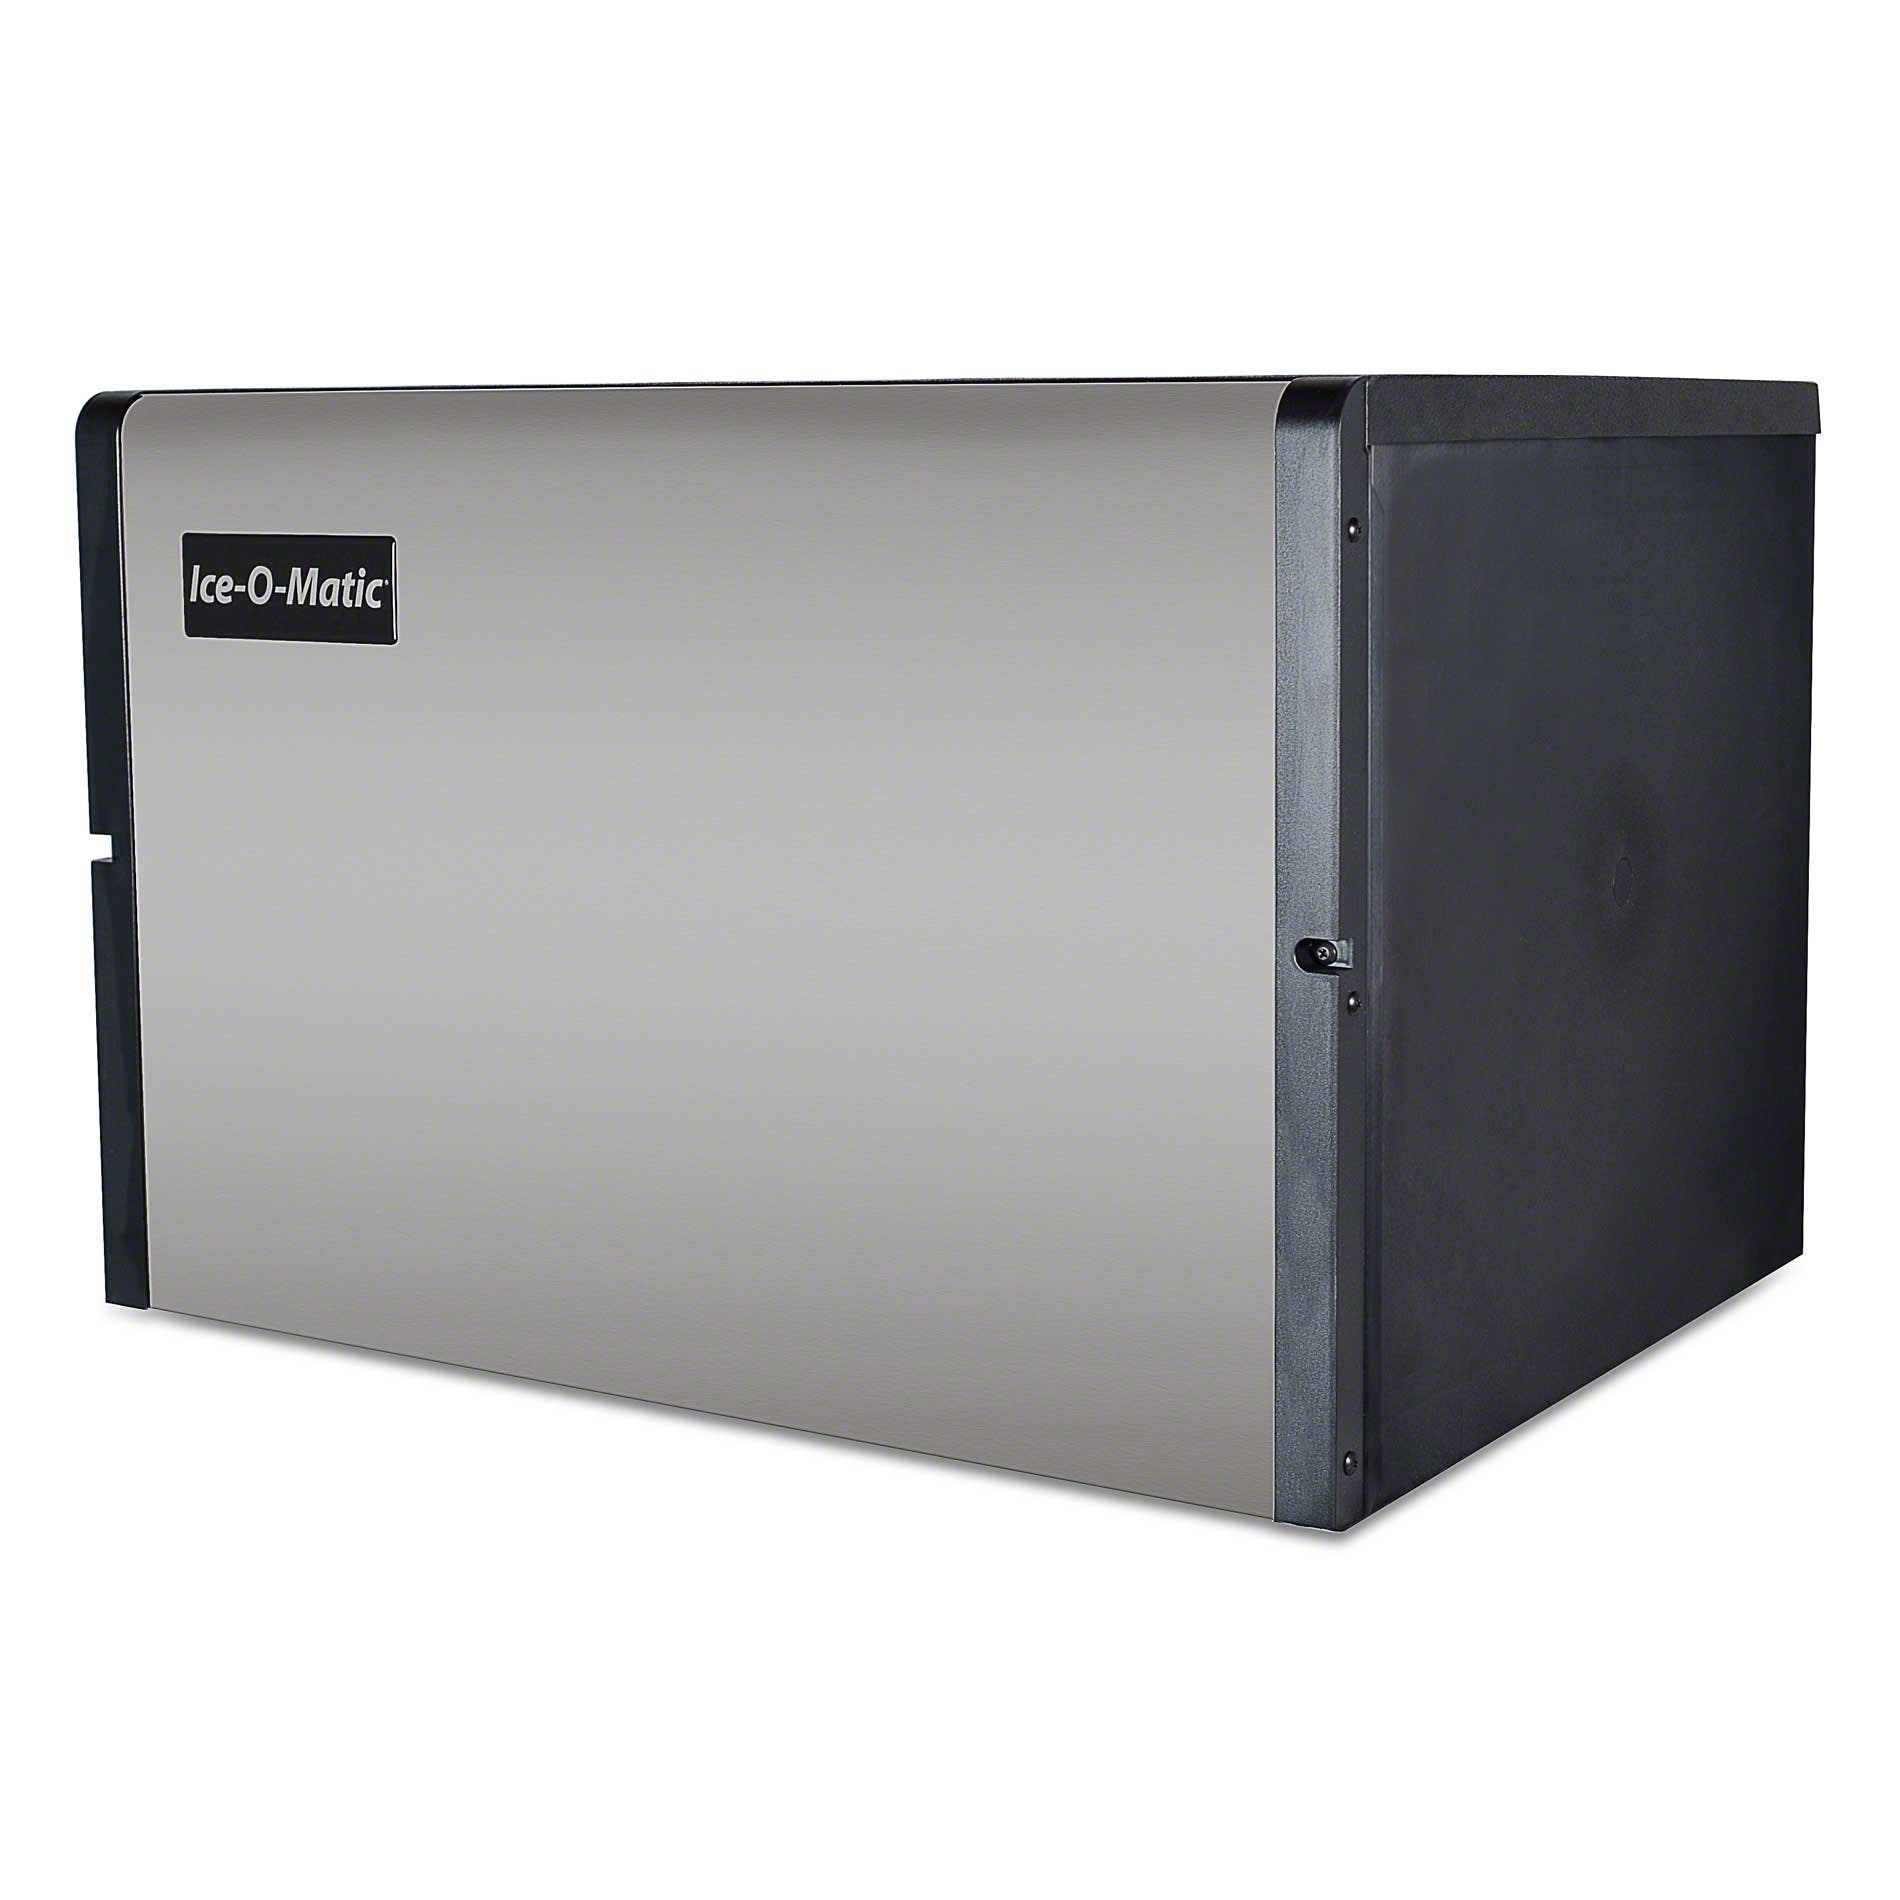 Ice-O-Matic - ICE0500FR 567 lb Full Cube Ice Machine - sold by Food Service Warehouse